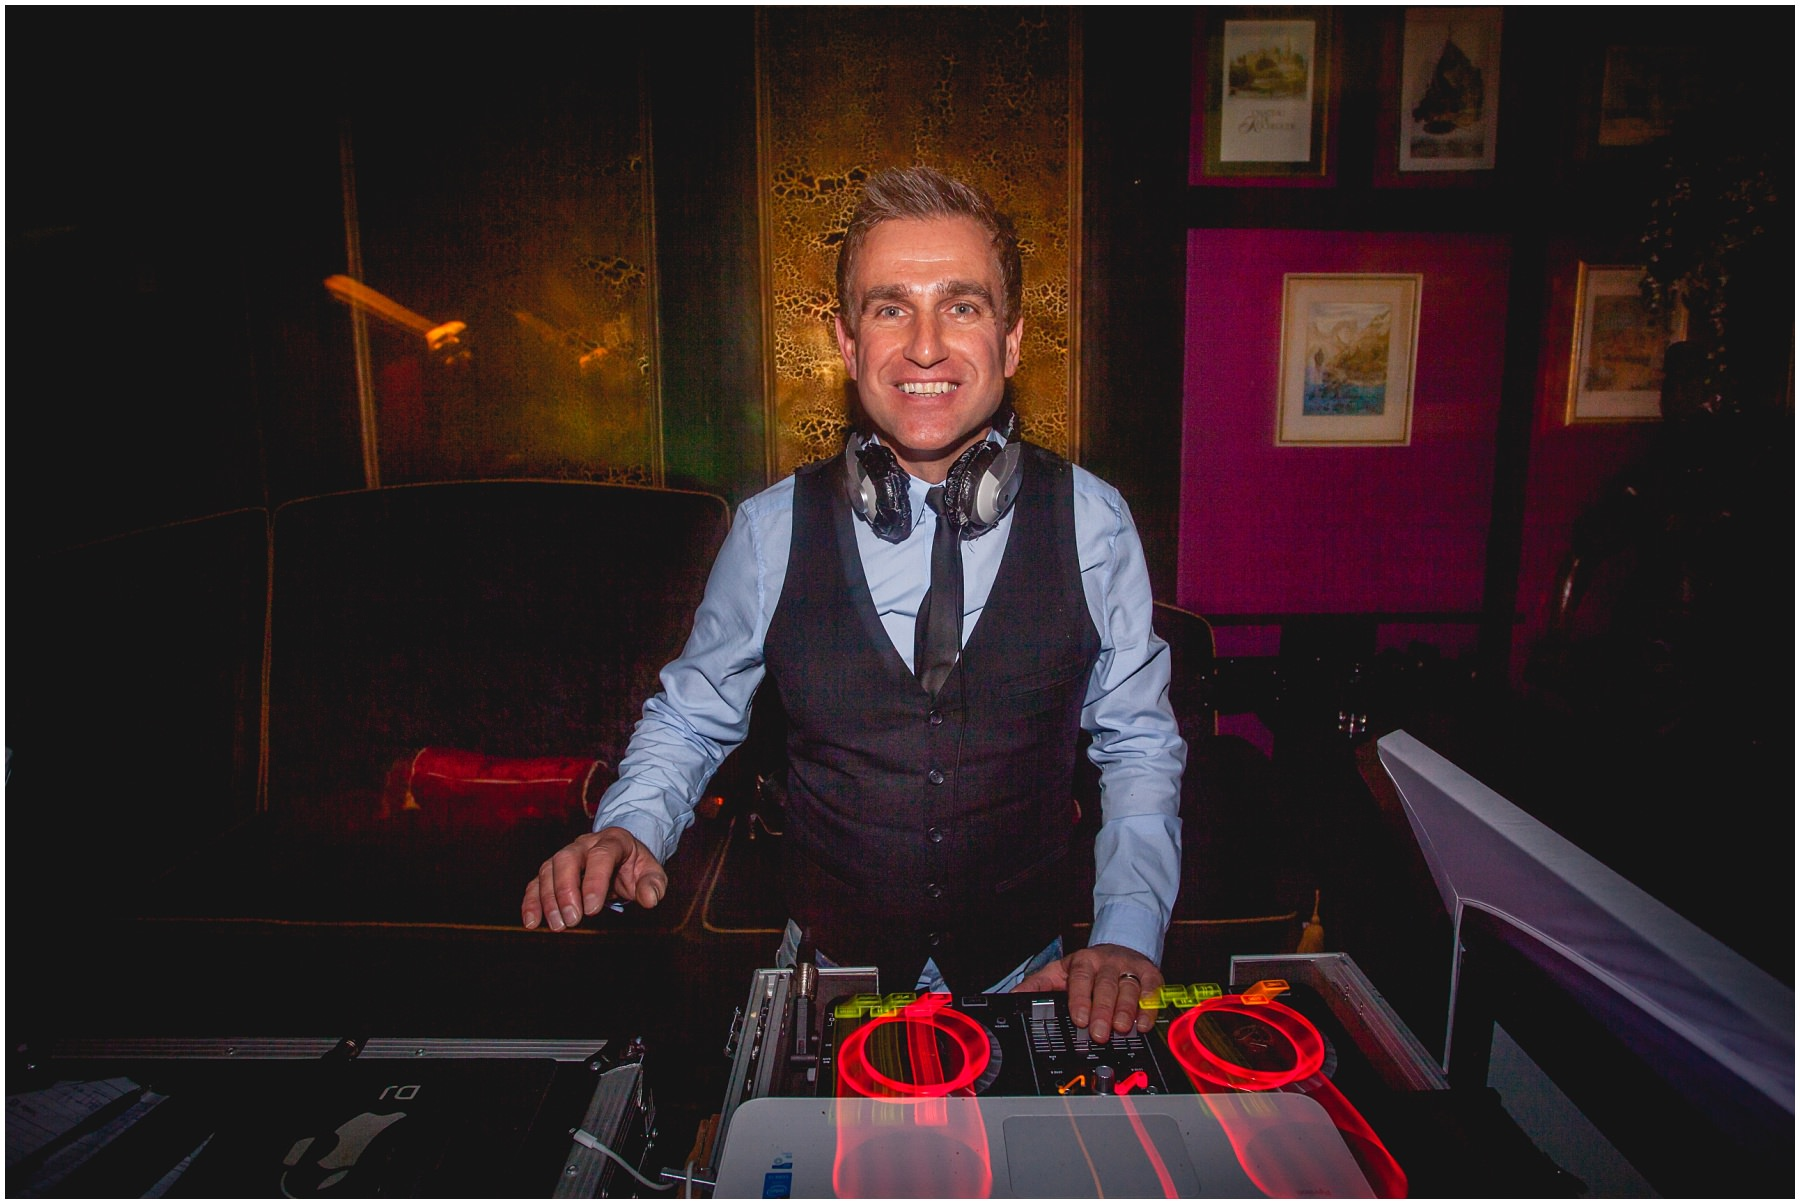 Lee Stone DJ of Love Music Events